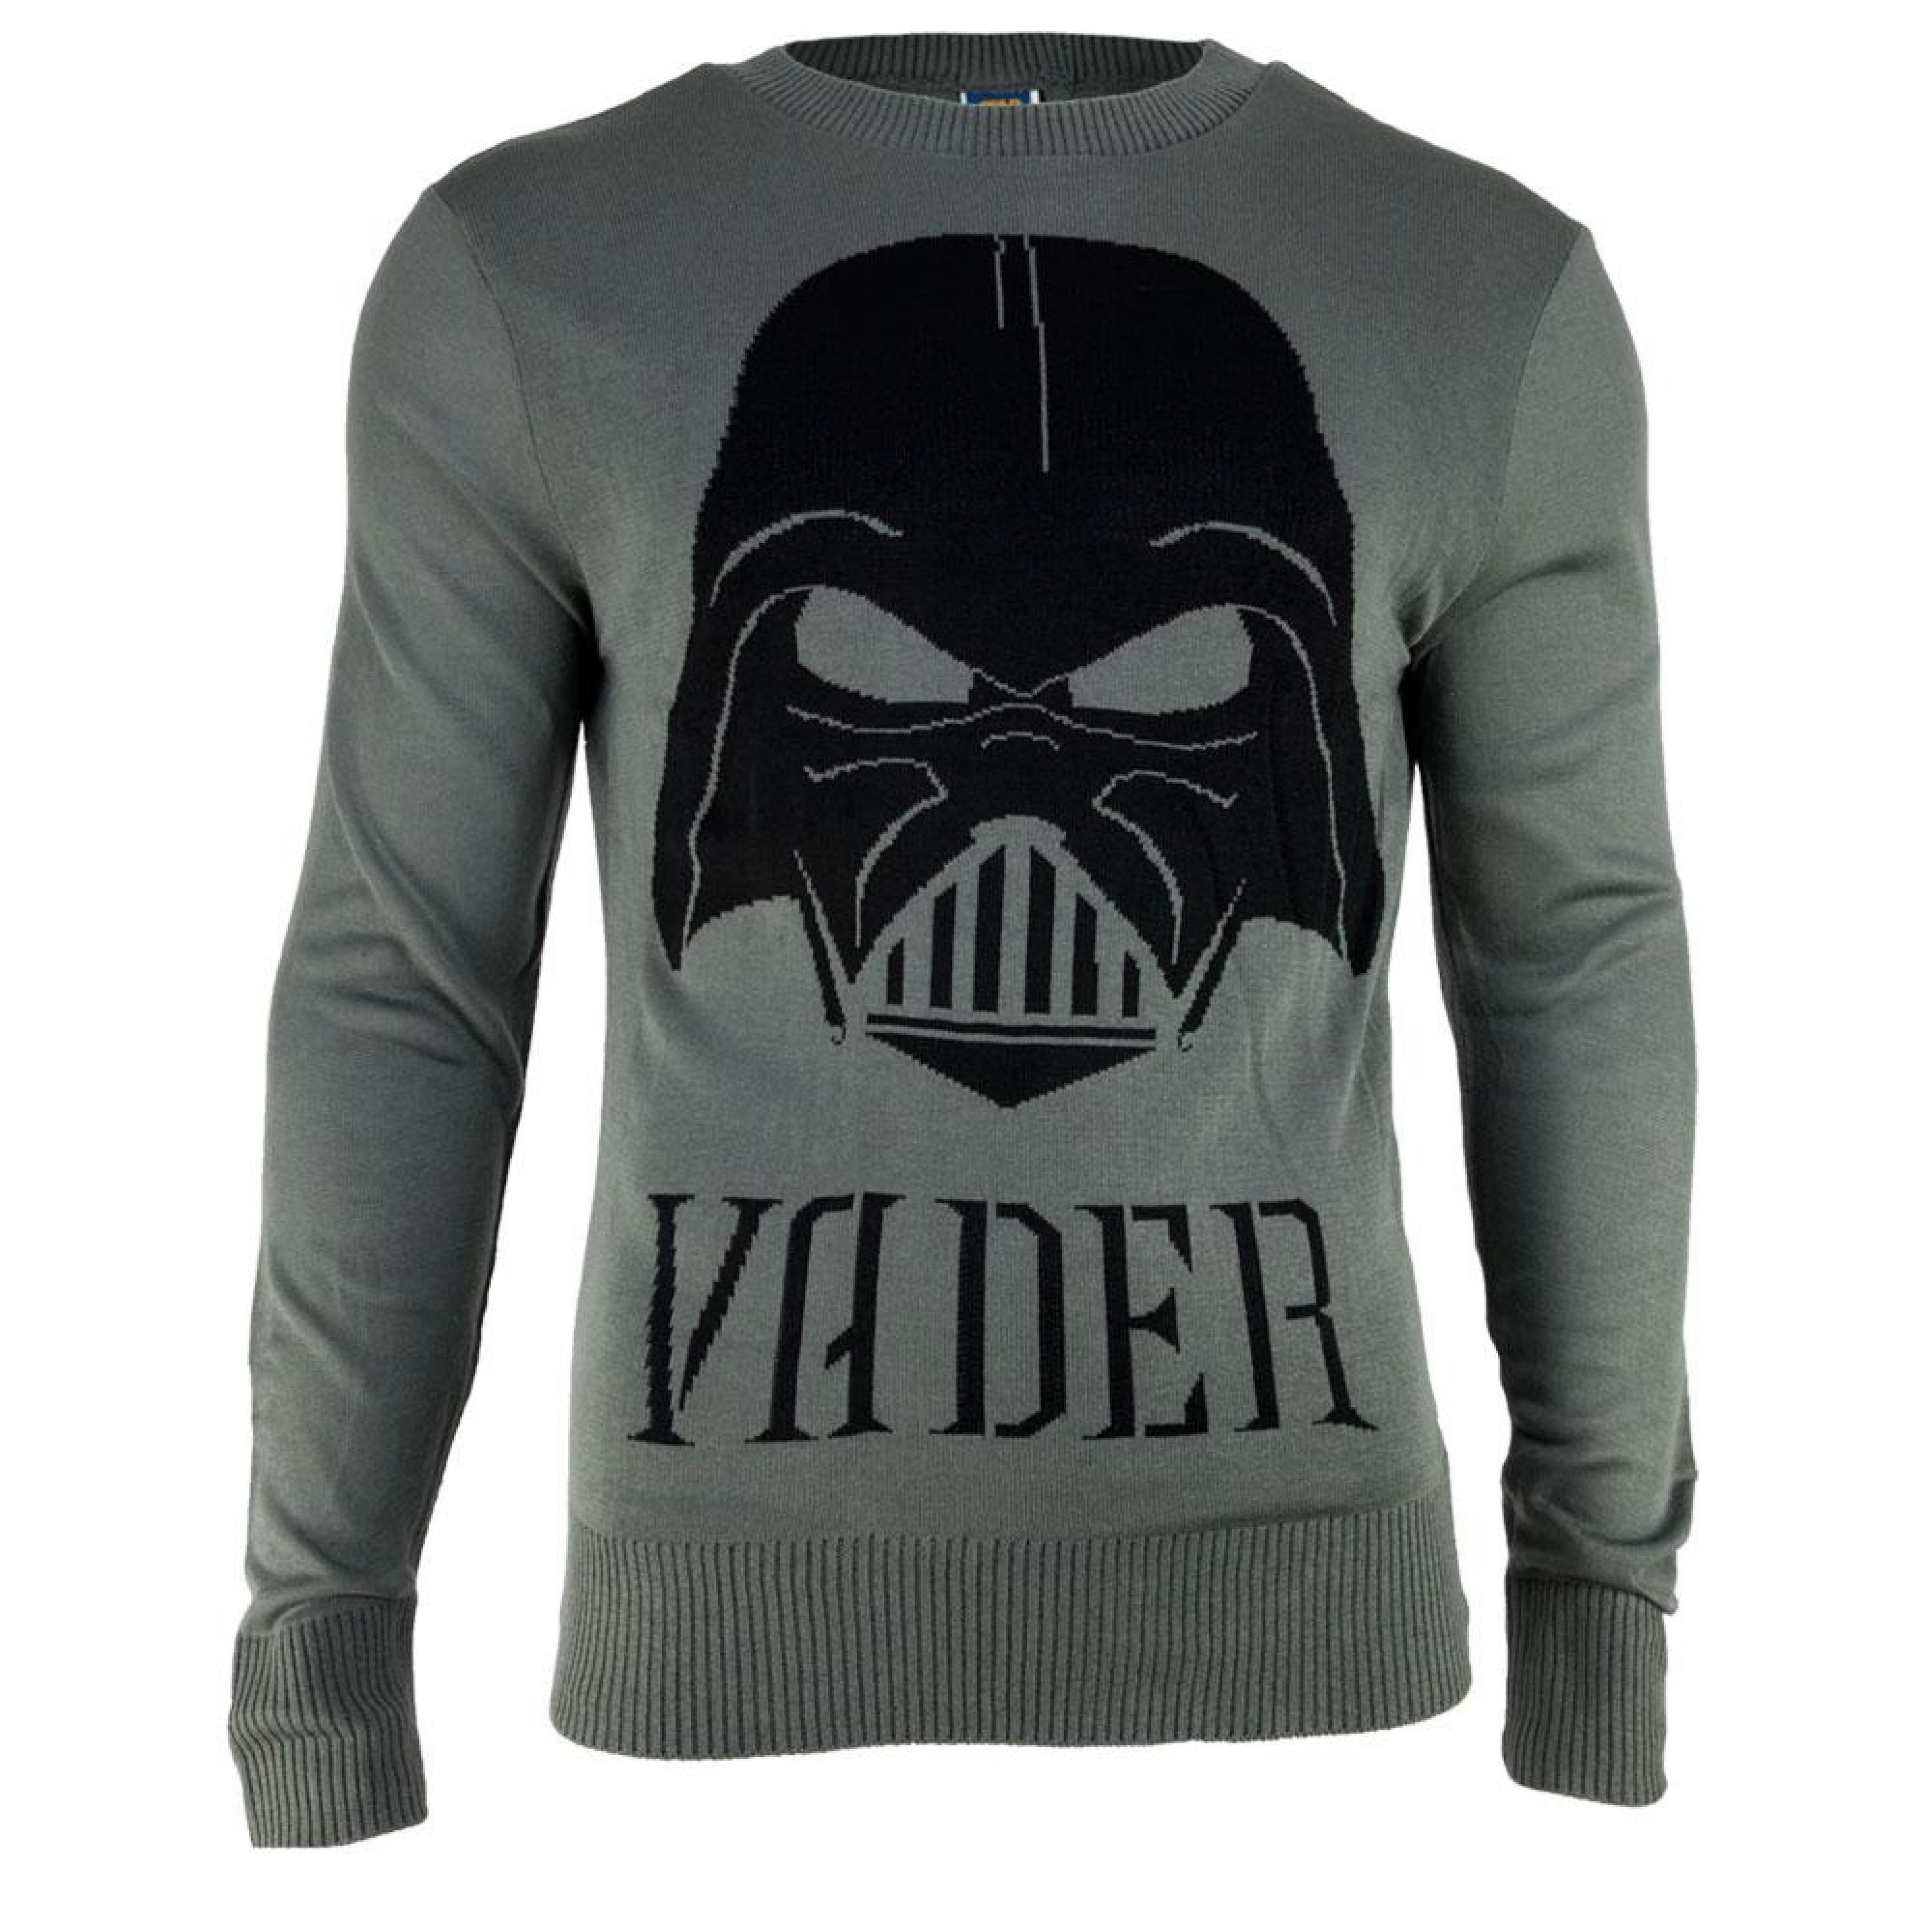 Darth Vader Knitted Sweater